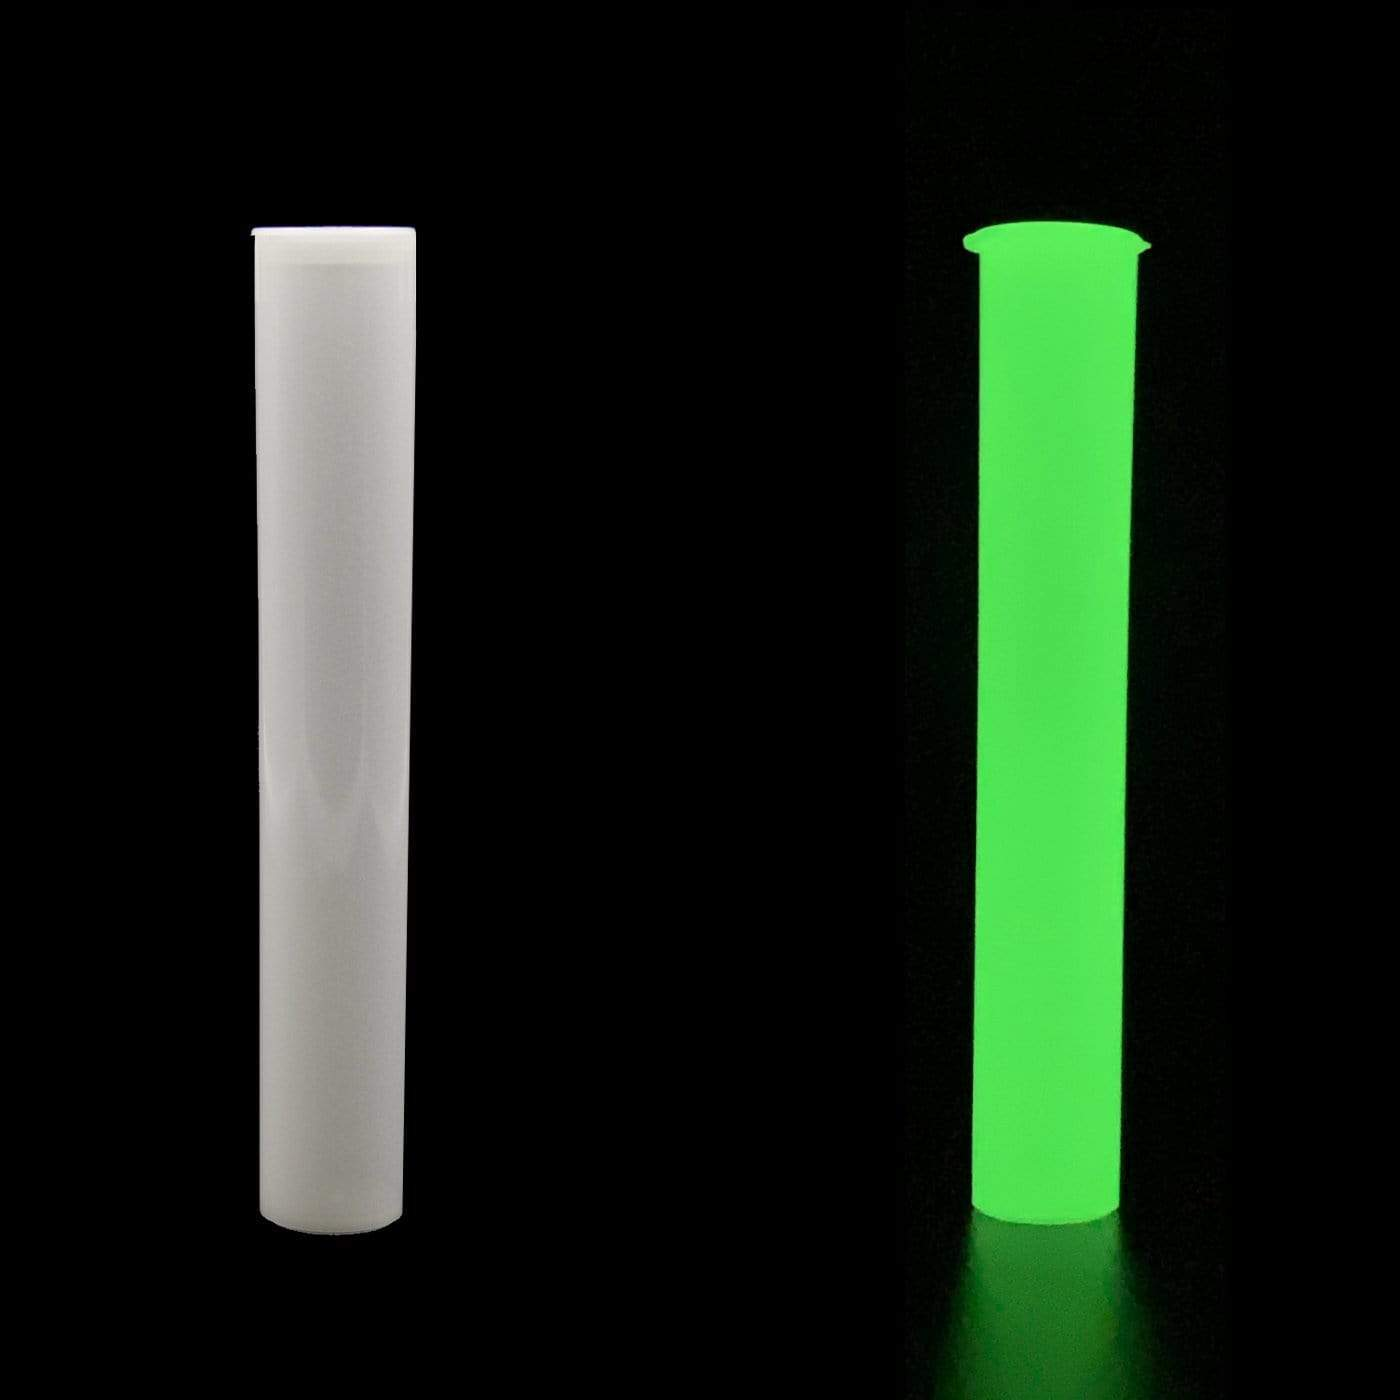 Glow in the Dark Squeeze Top Child-Resistant 116mm J-Tube Glow in the Dark